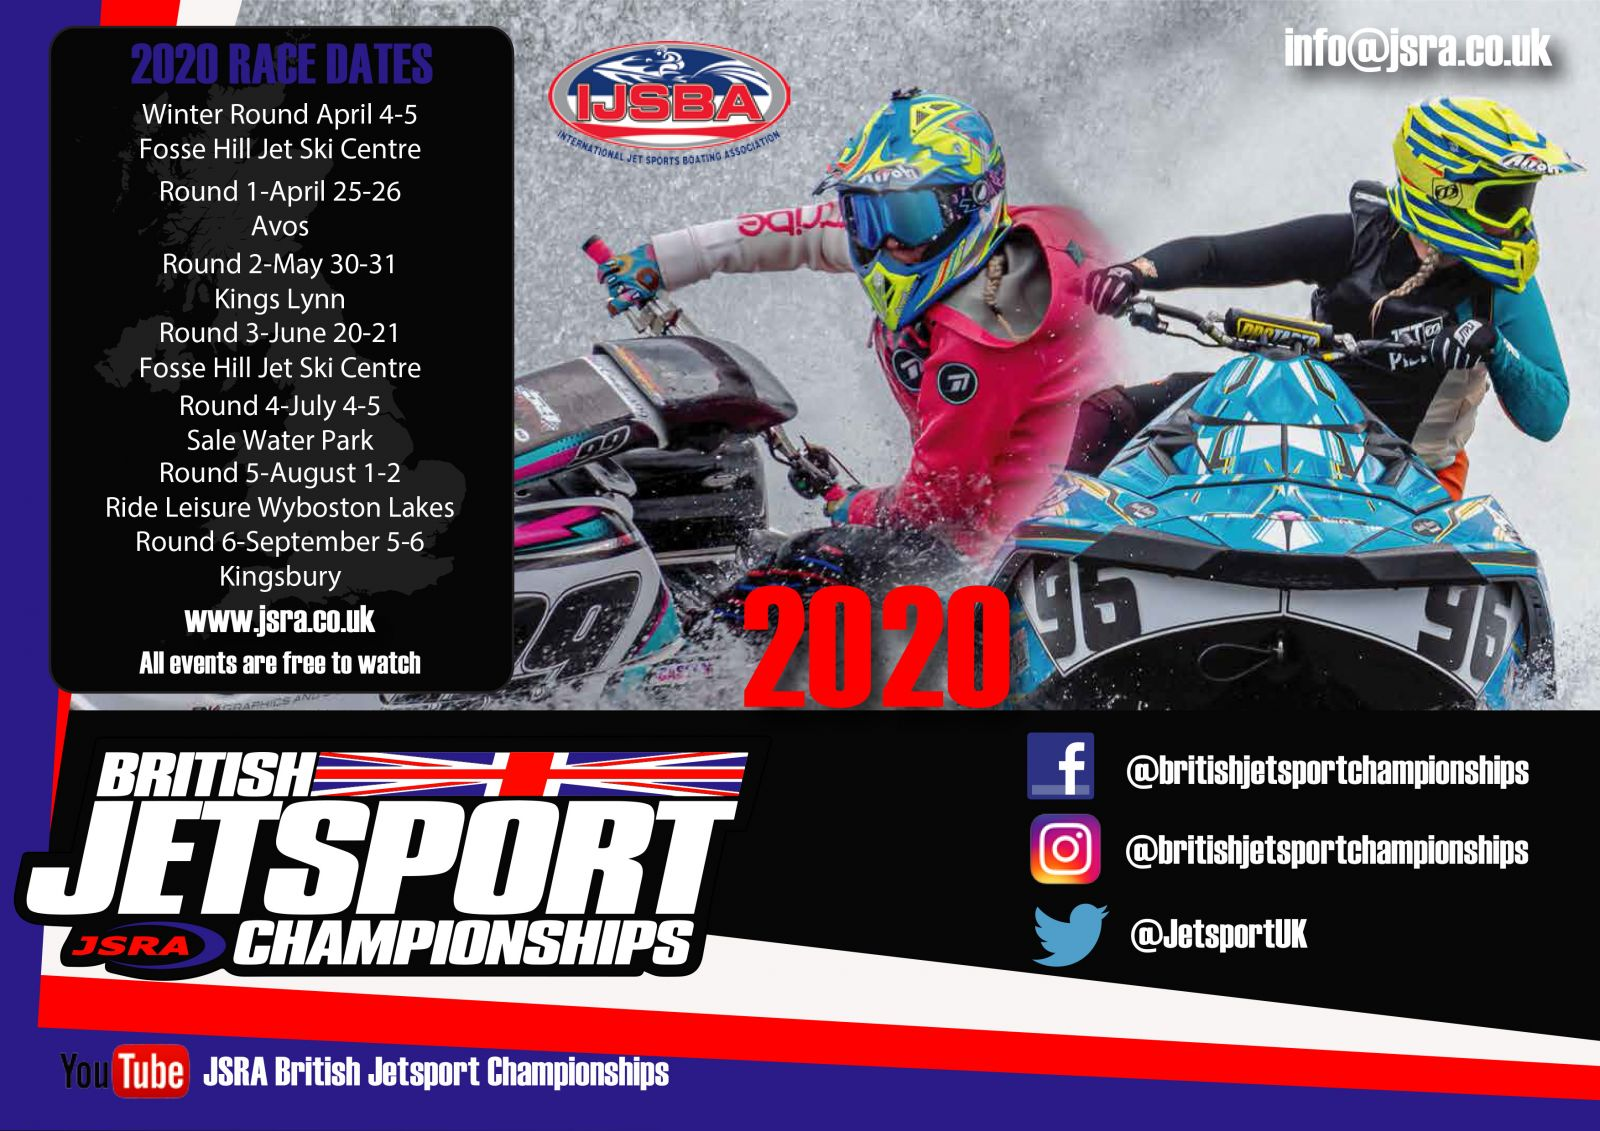 2020 British Jetsport Championships Race Dates